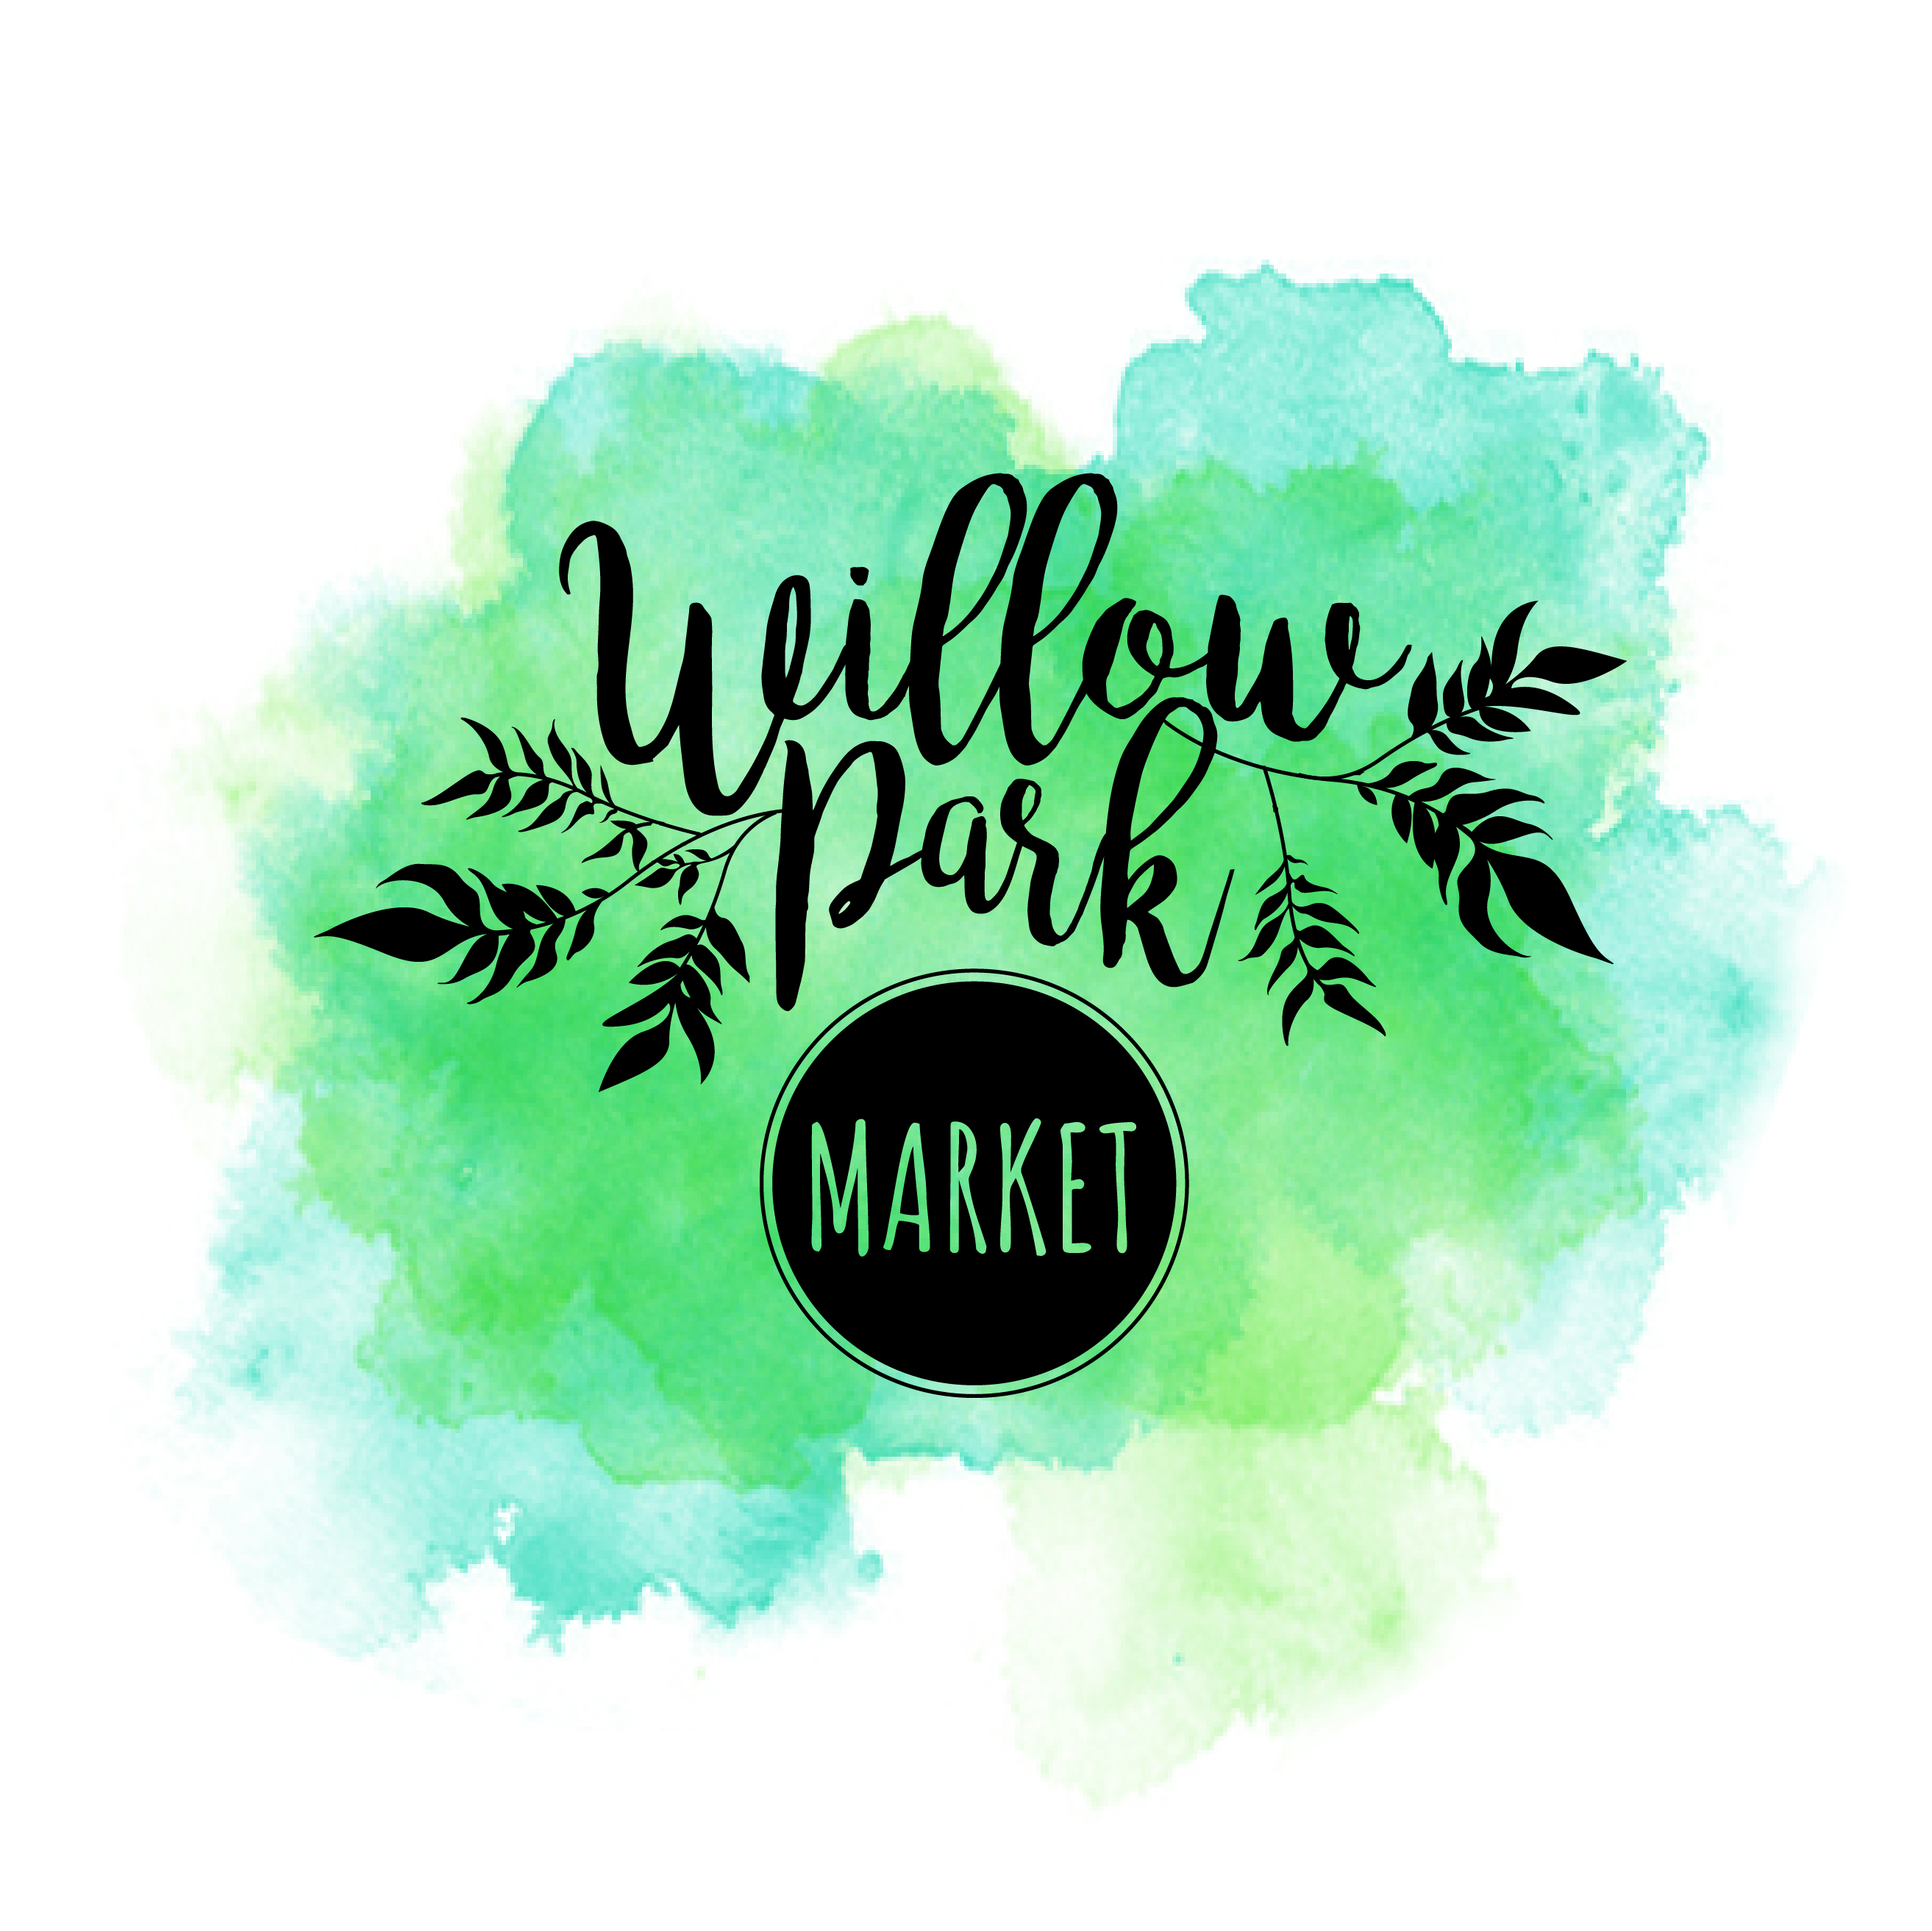 willow park market